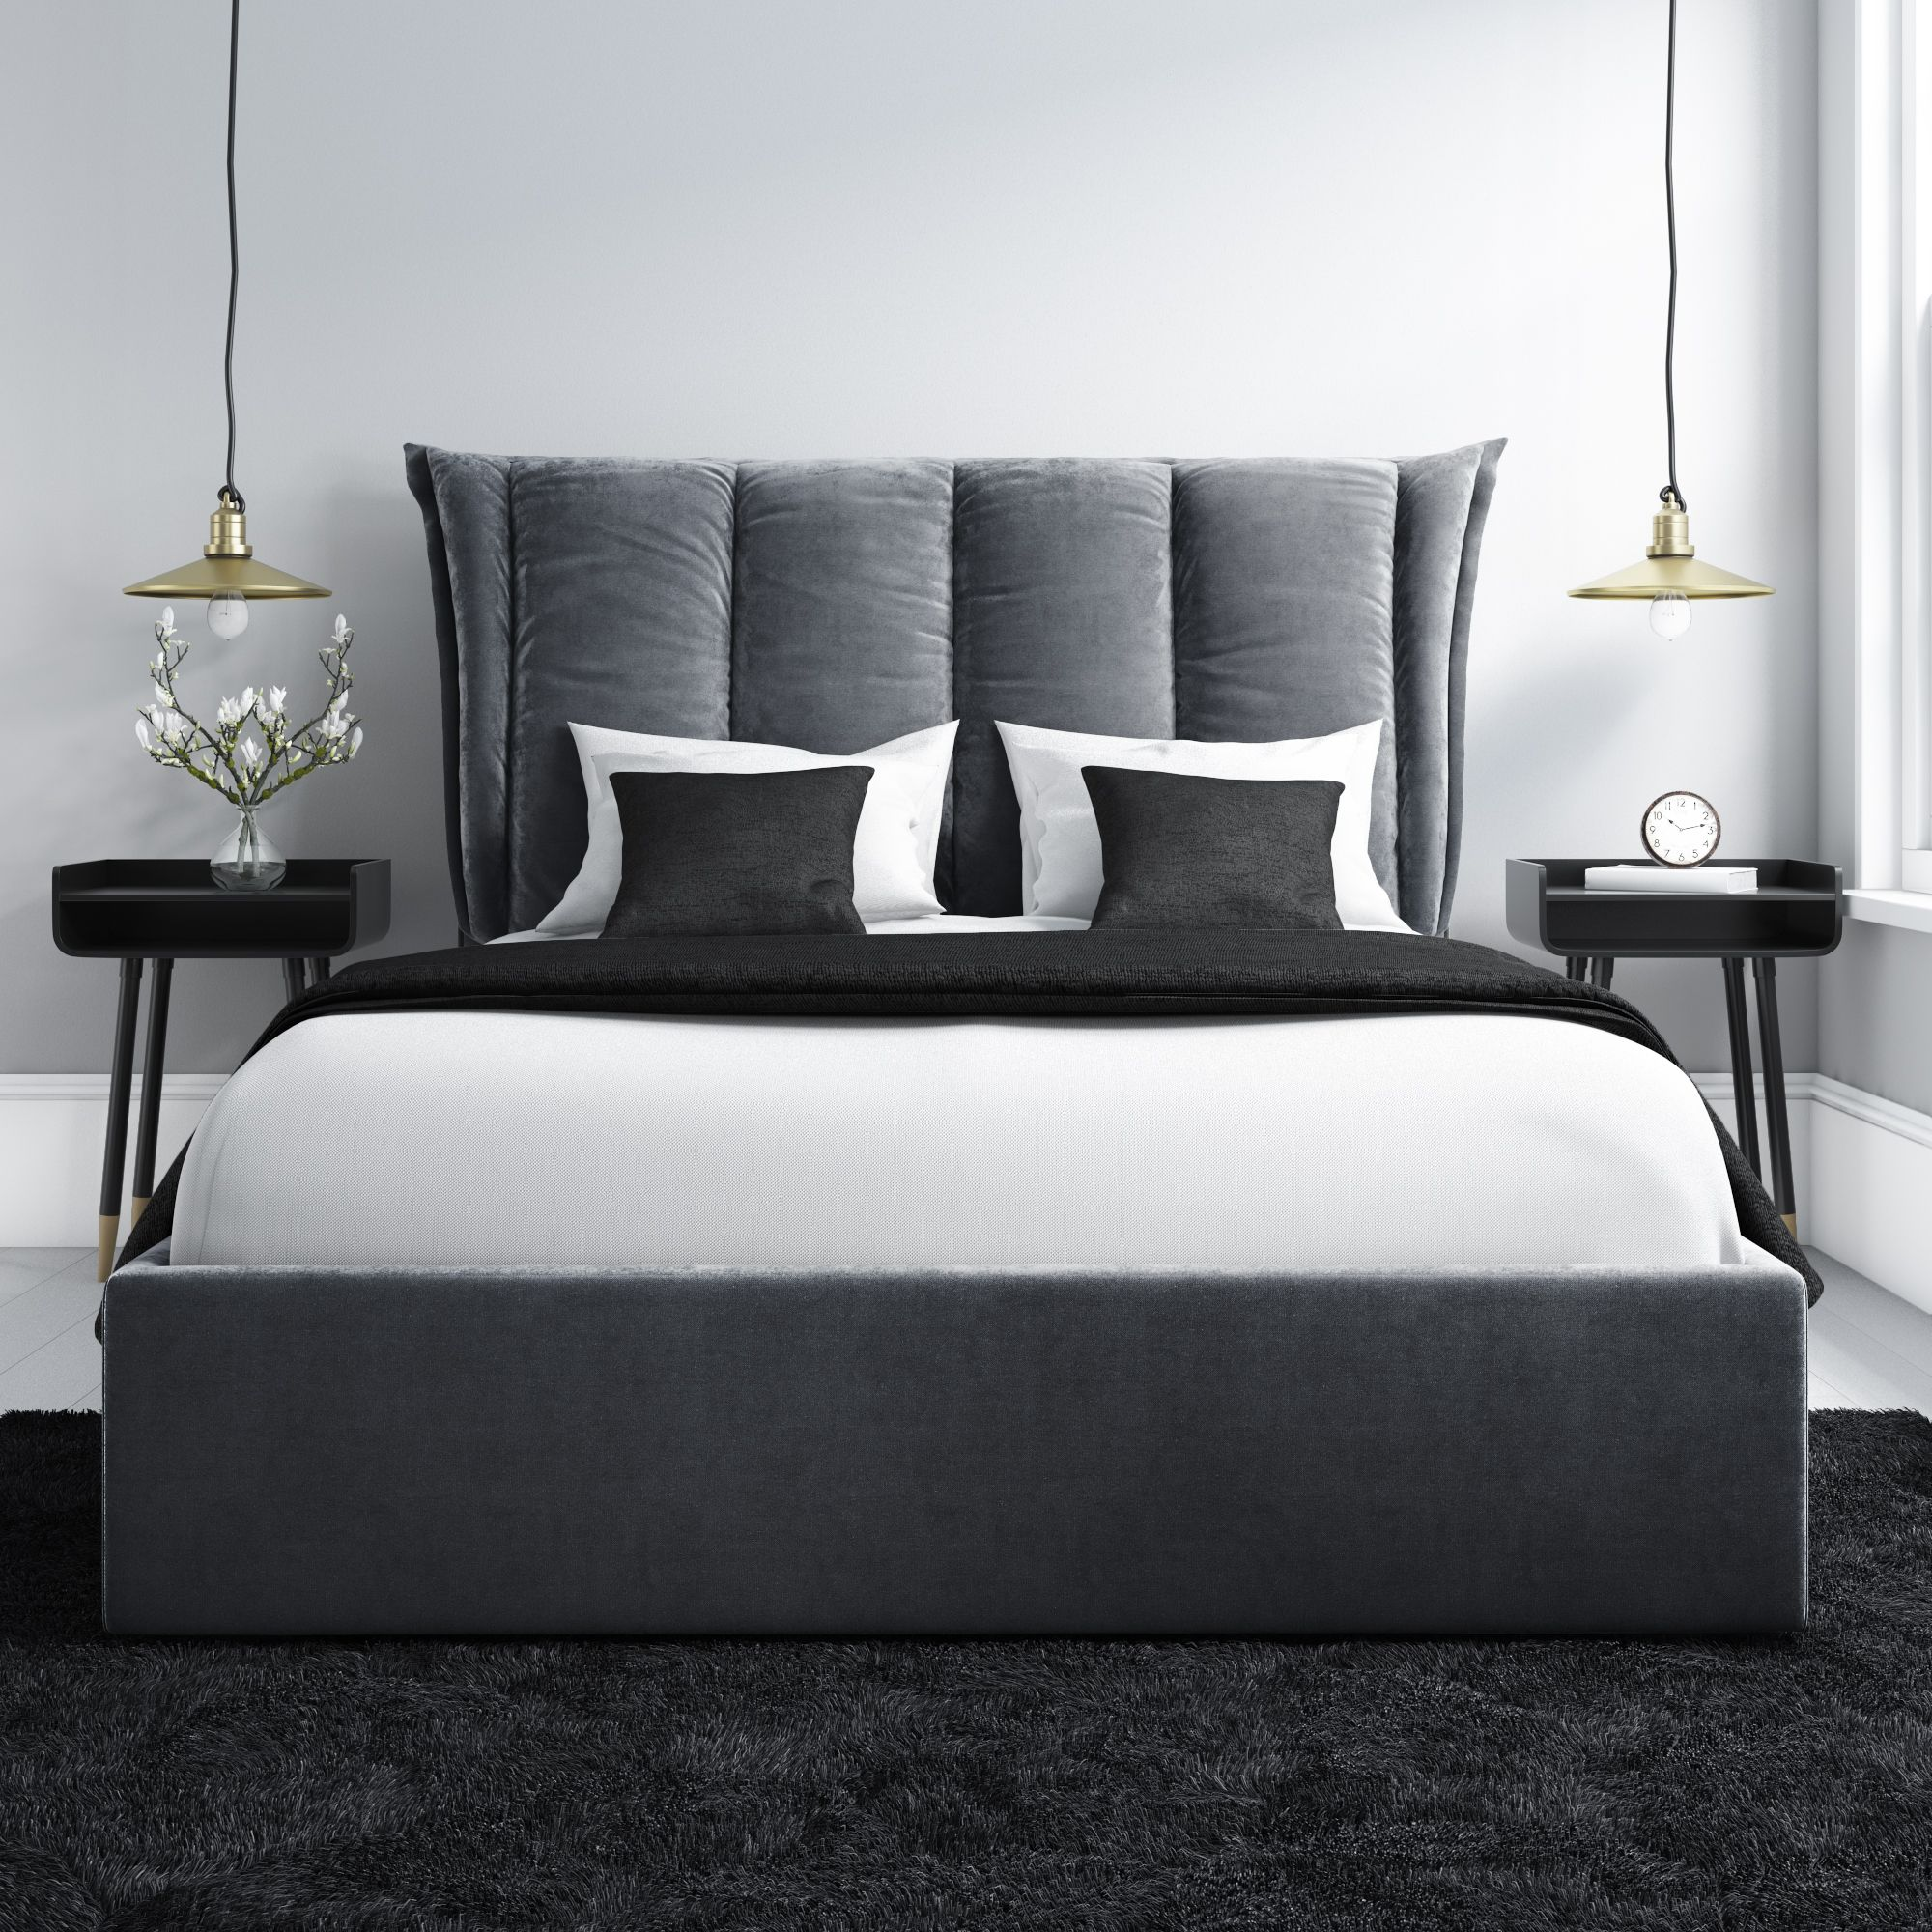 Best Maddox Double Ottoman Bed With Cushioned Headboard In 400 x 300